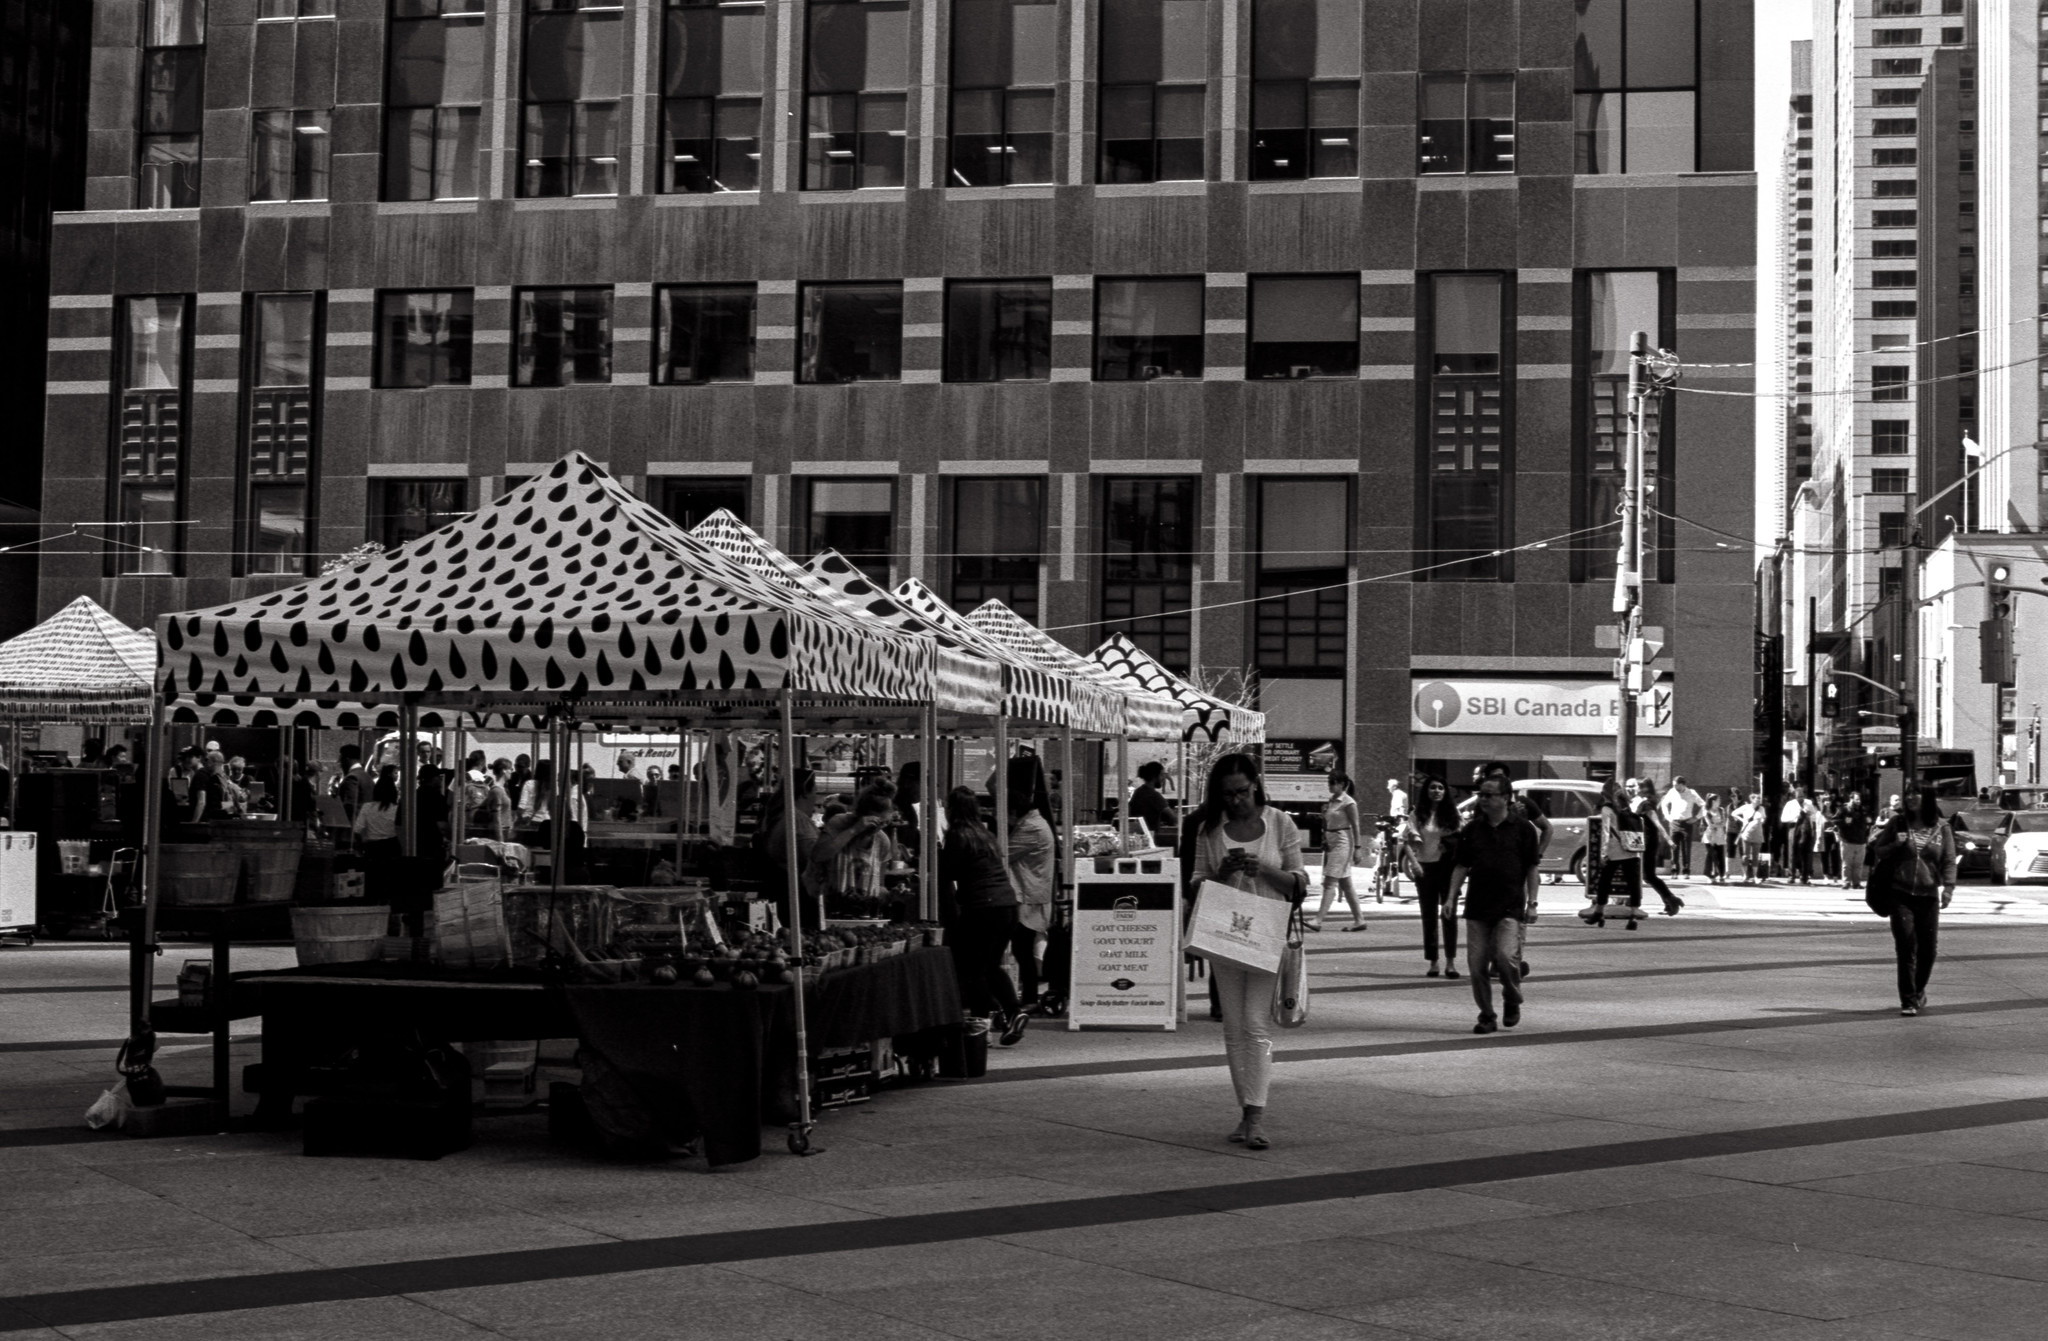 Financial District Farmers Market, Pentax K2, SMC Pentax M 50 f1.4 lens, Kodak Tri-X 400